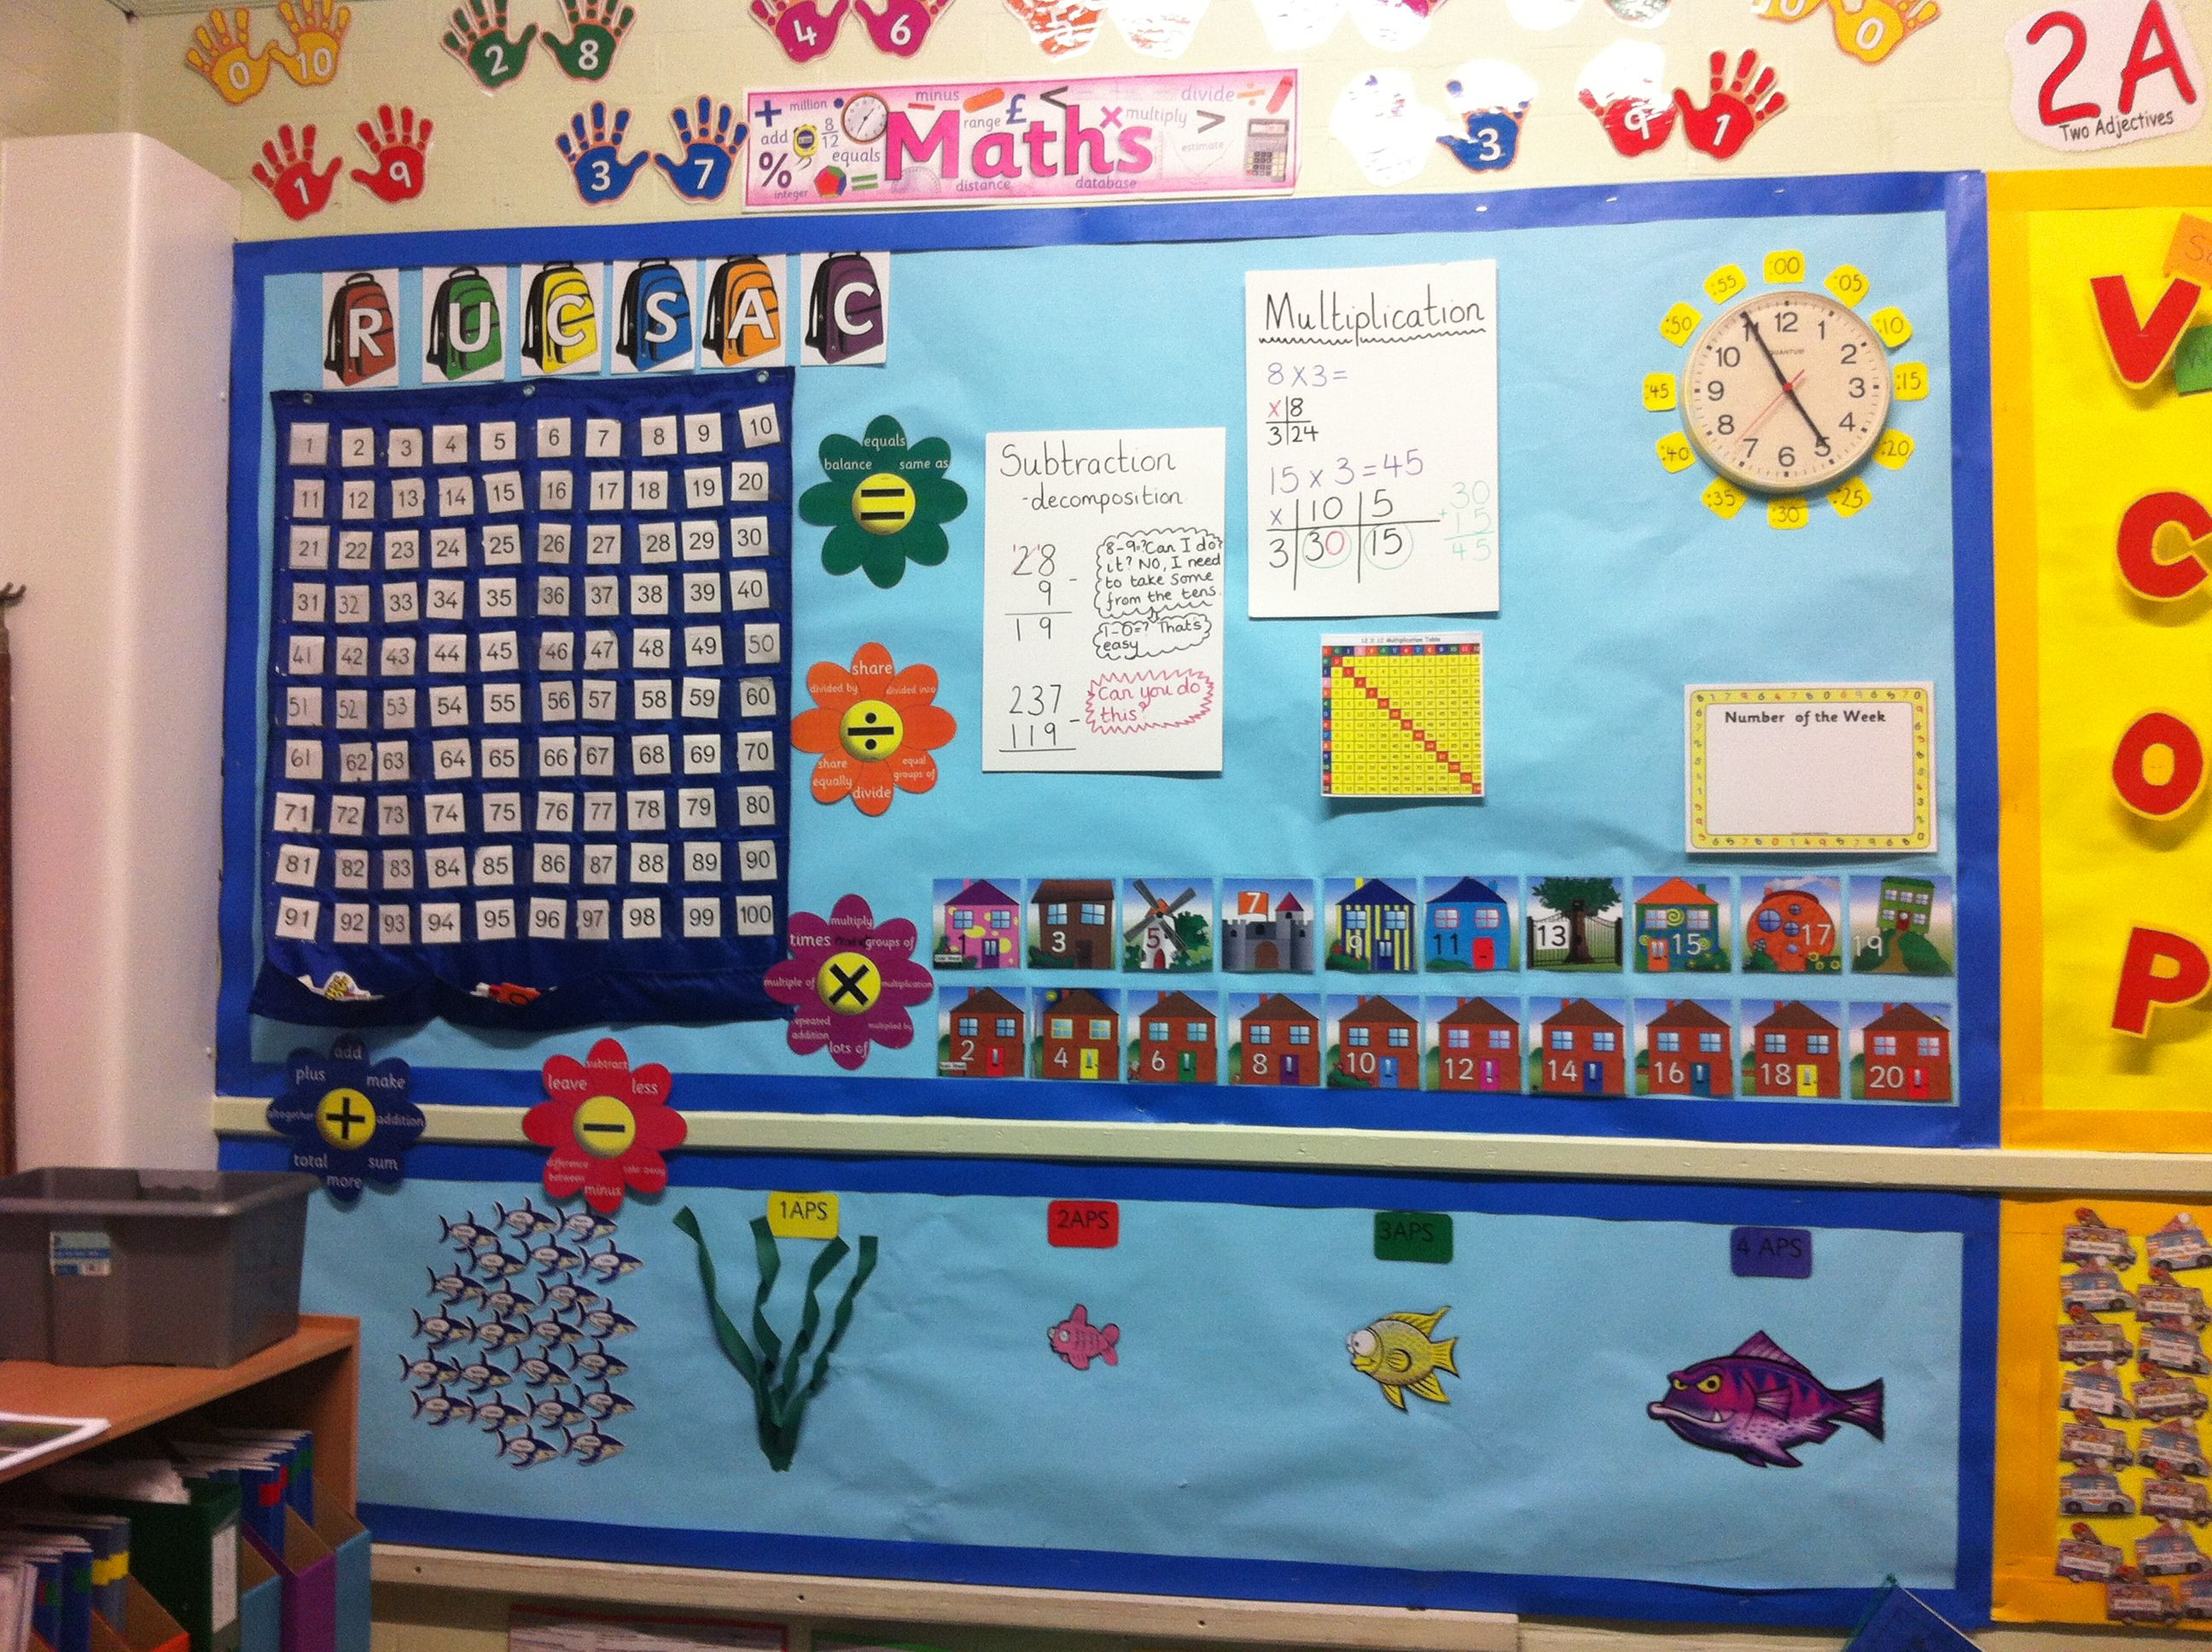 Math And Science Classroom Decorations : My maths learning wall at school elementary math